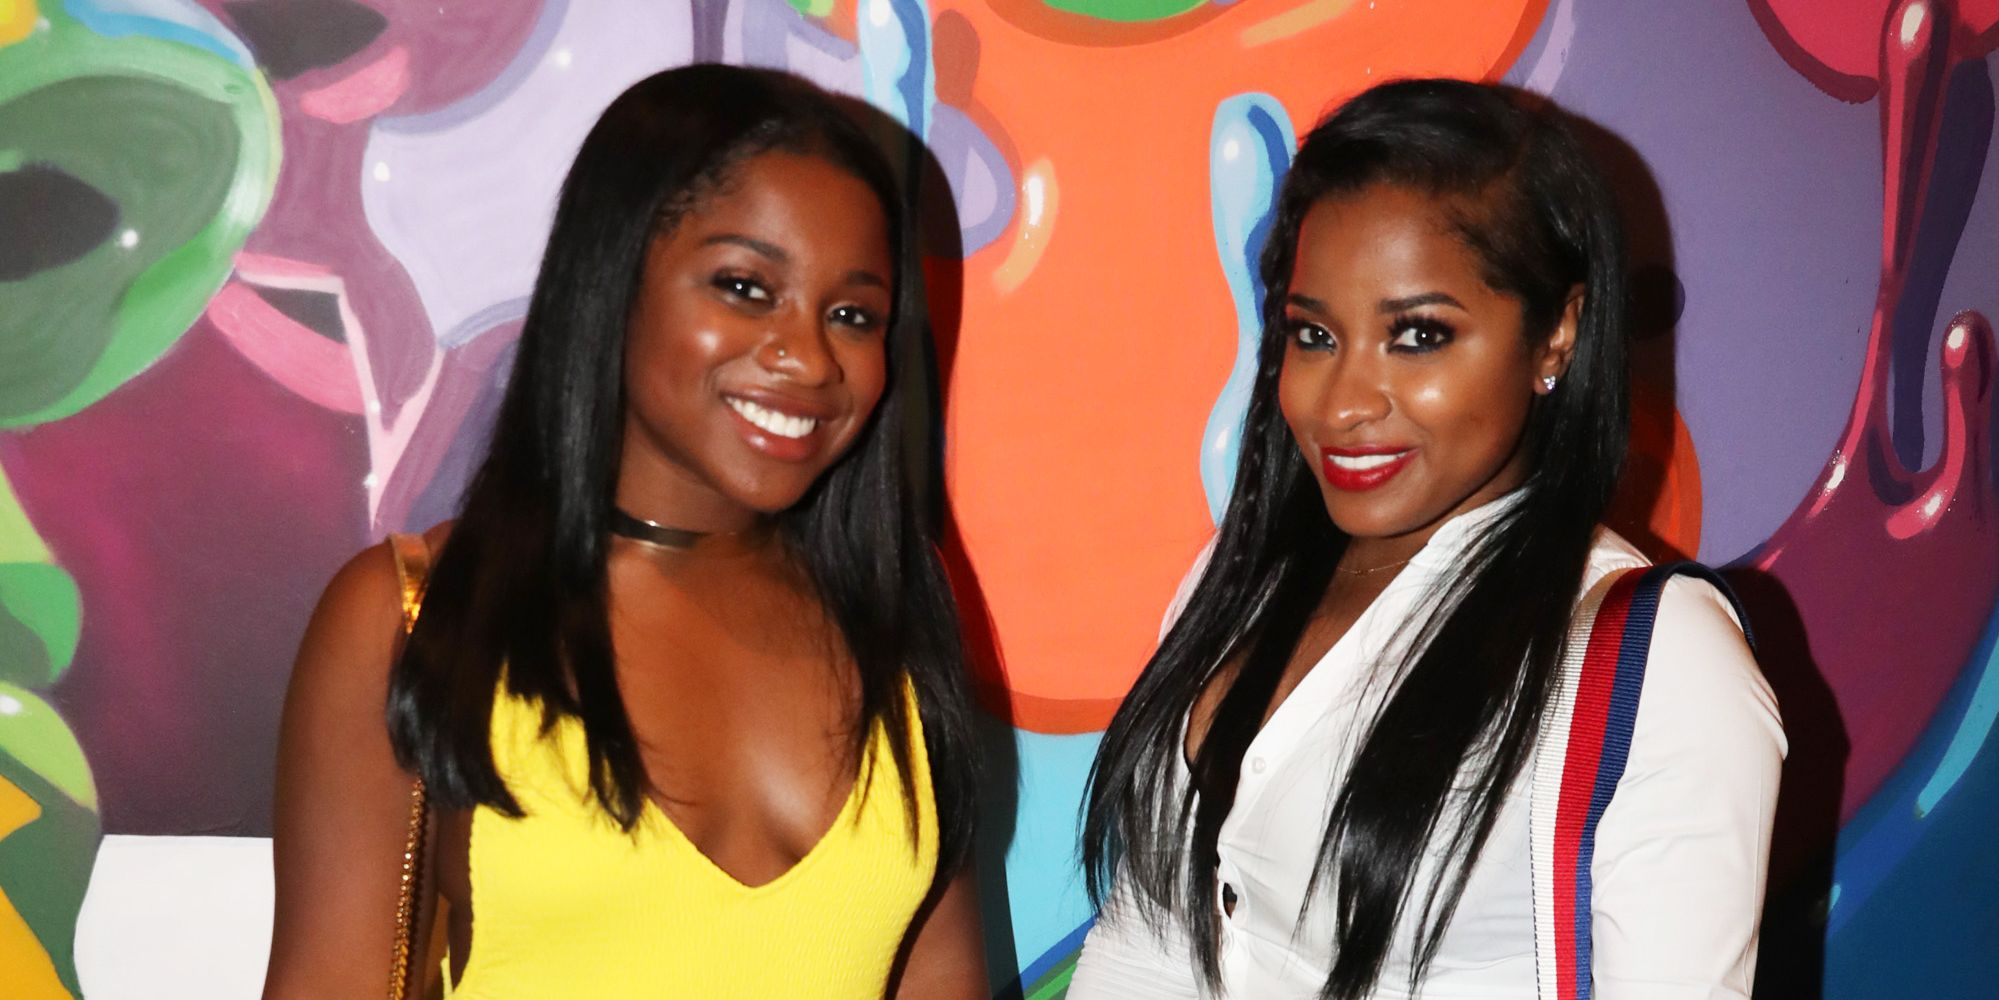 Toya Wright Floods Her Social Media Account With Pics And Footage From Her Daughter, Reginae Carter's 21st Birthday - The Party Was Lit!